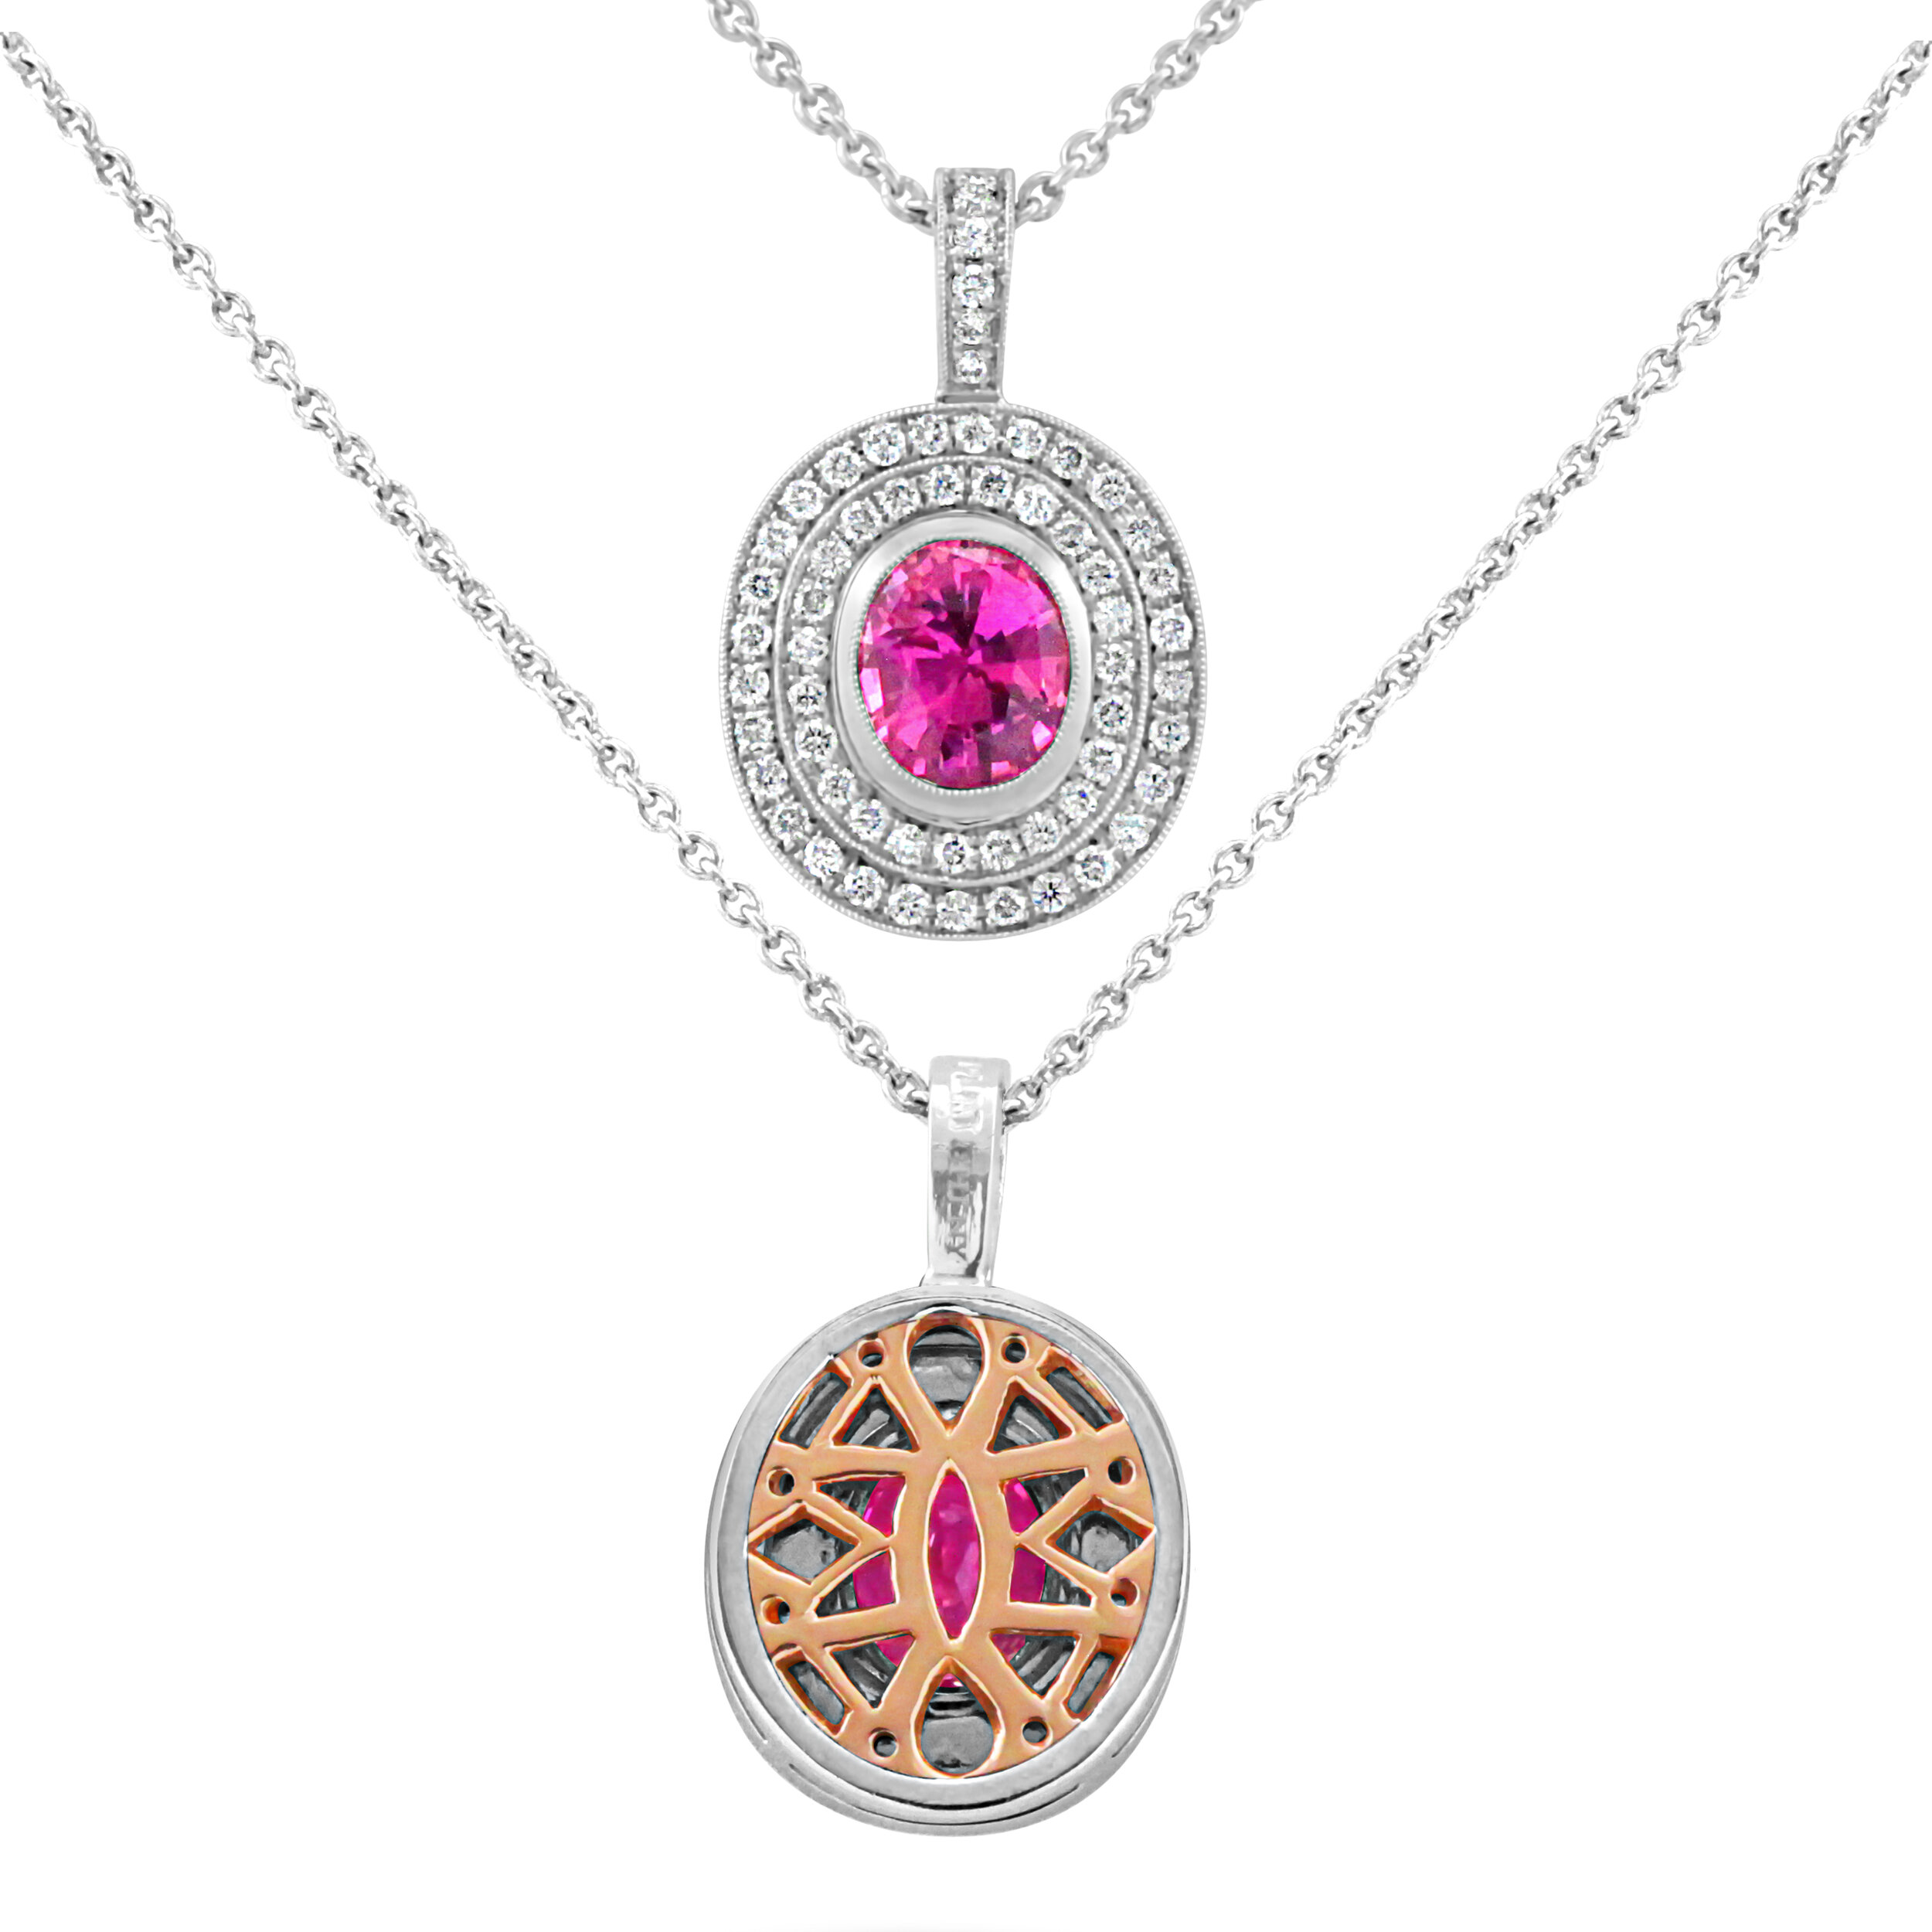 2 ct pink sapphire front back.jpg